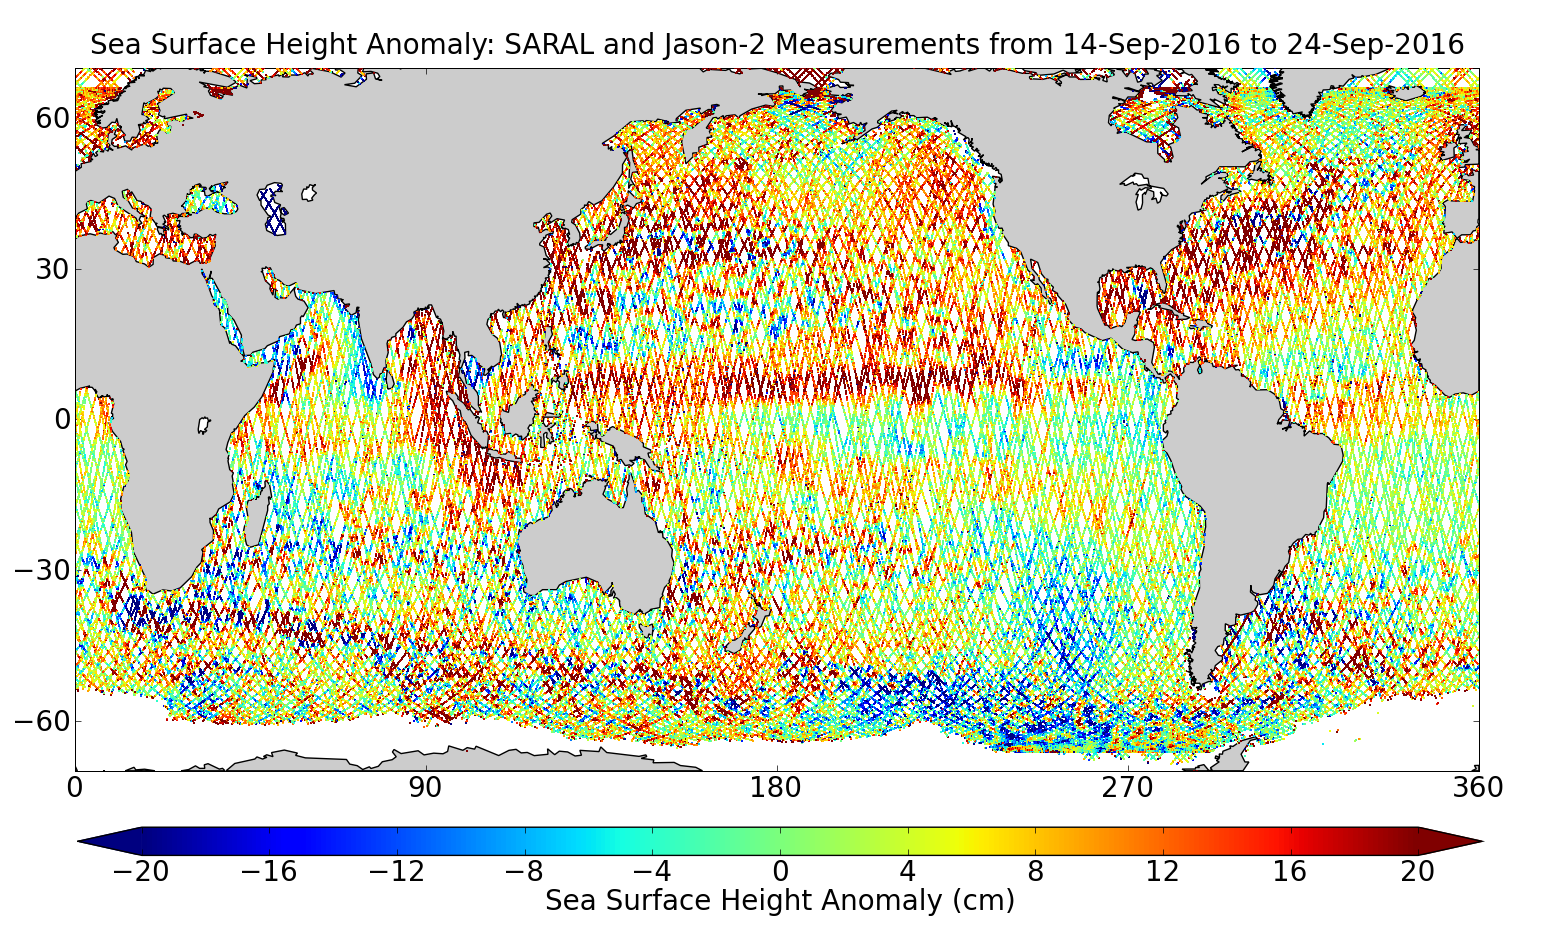 Sea Surface Height Anomaly: SARAL and Jason-2 Measurements from 14-Sep-2016 to 24-Sep-2016